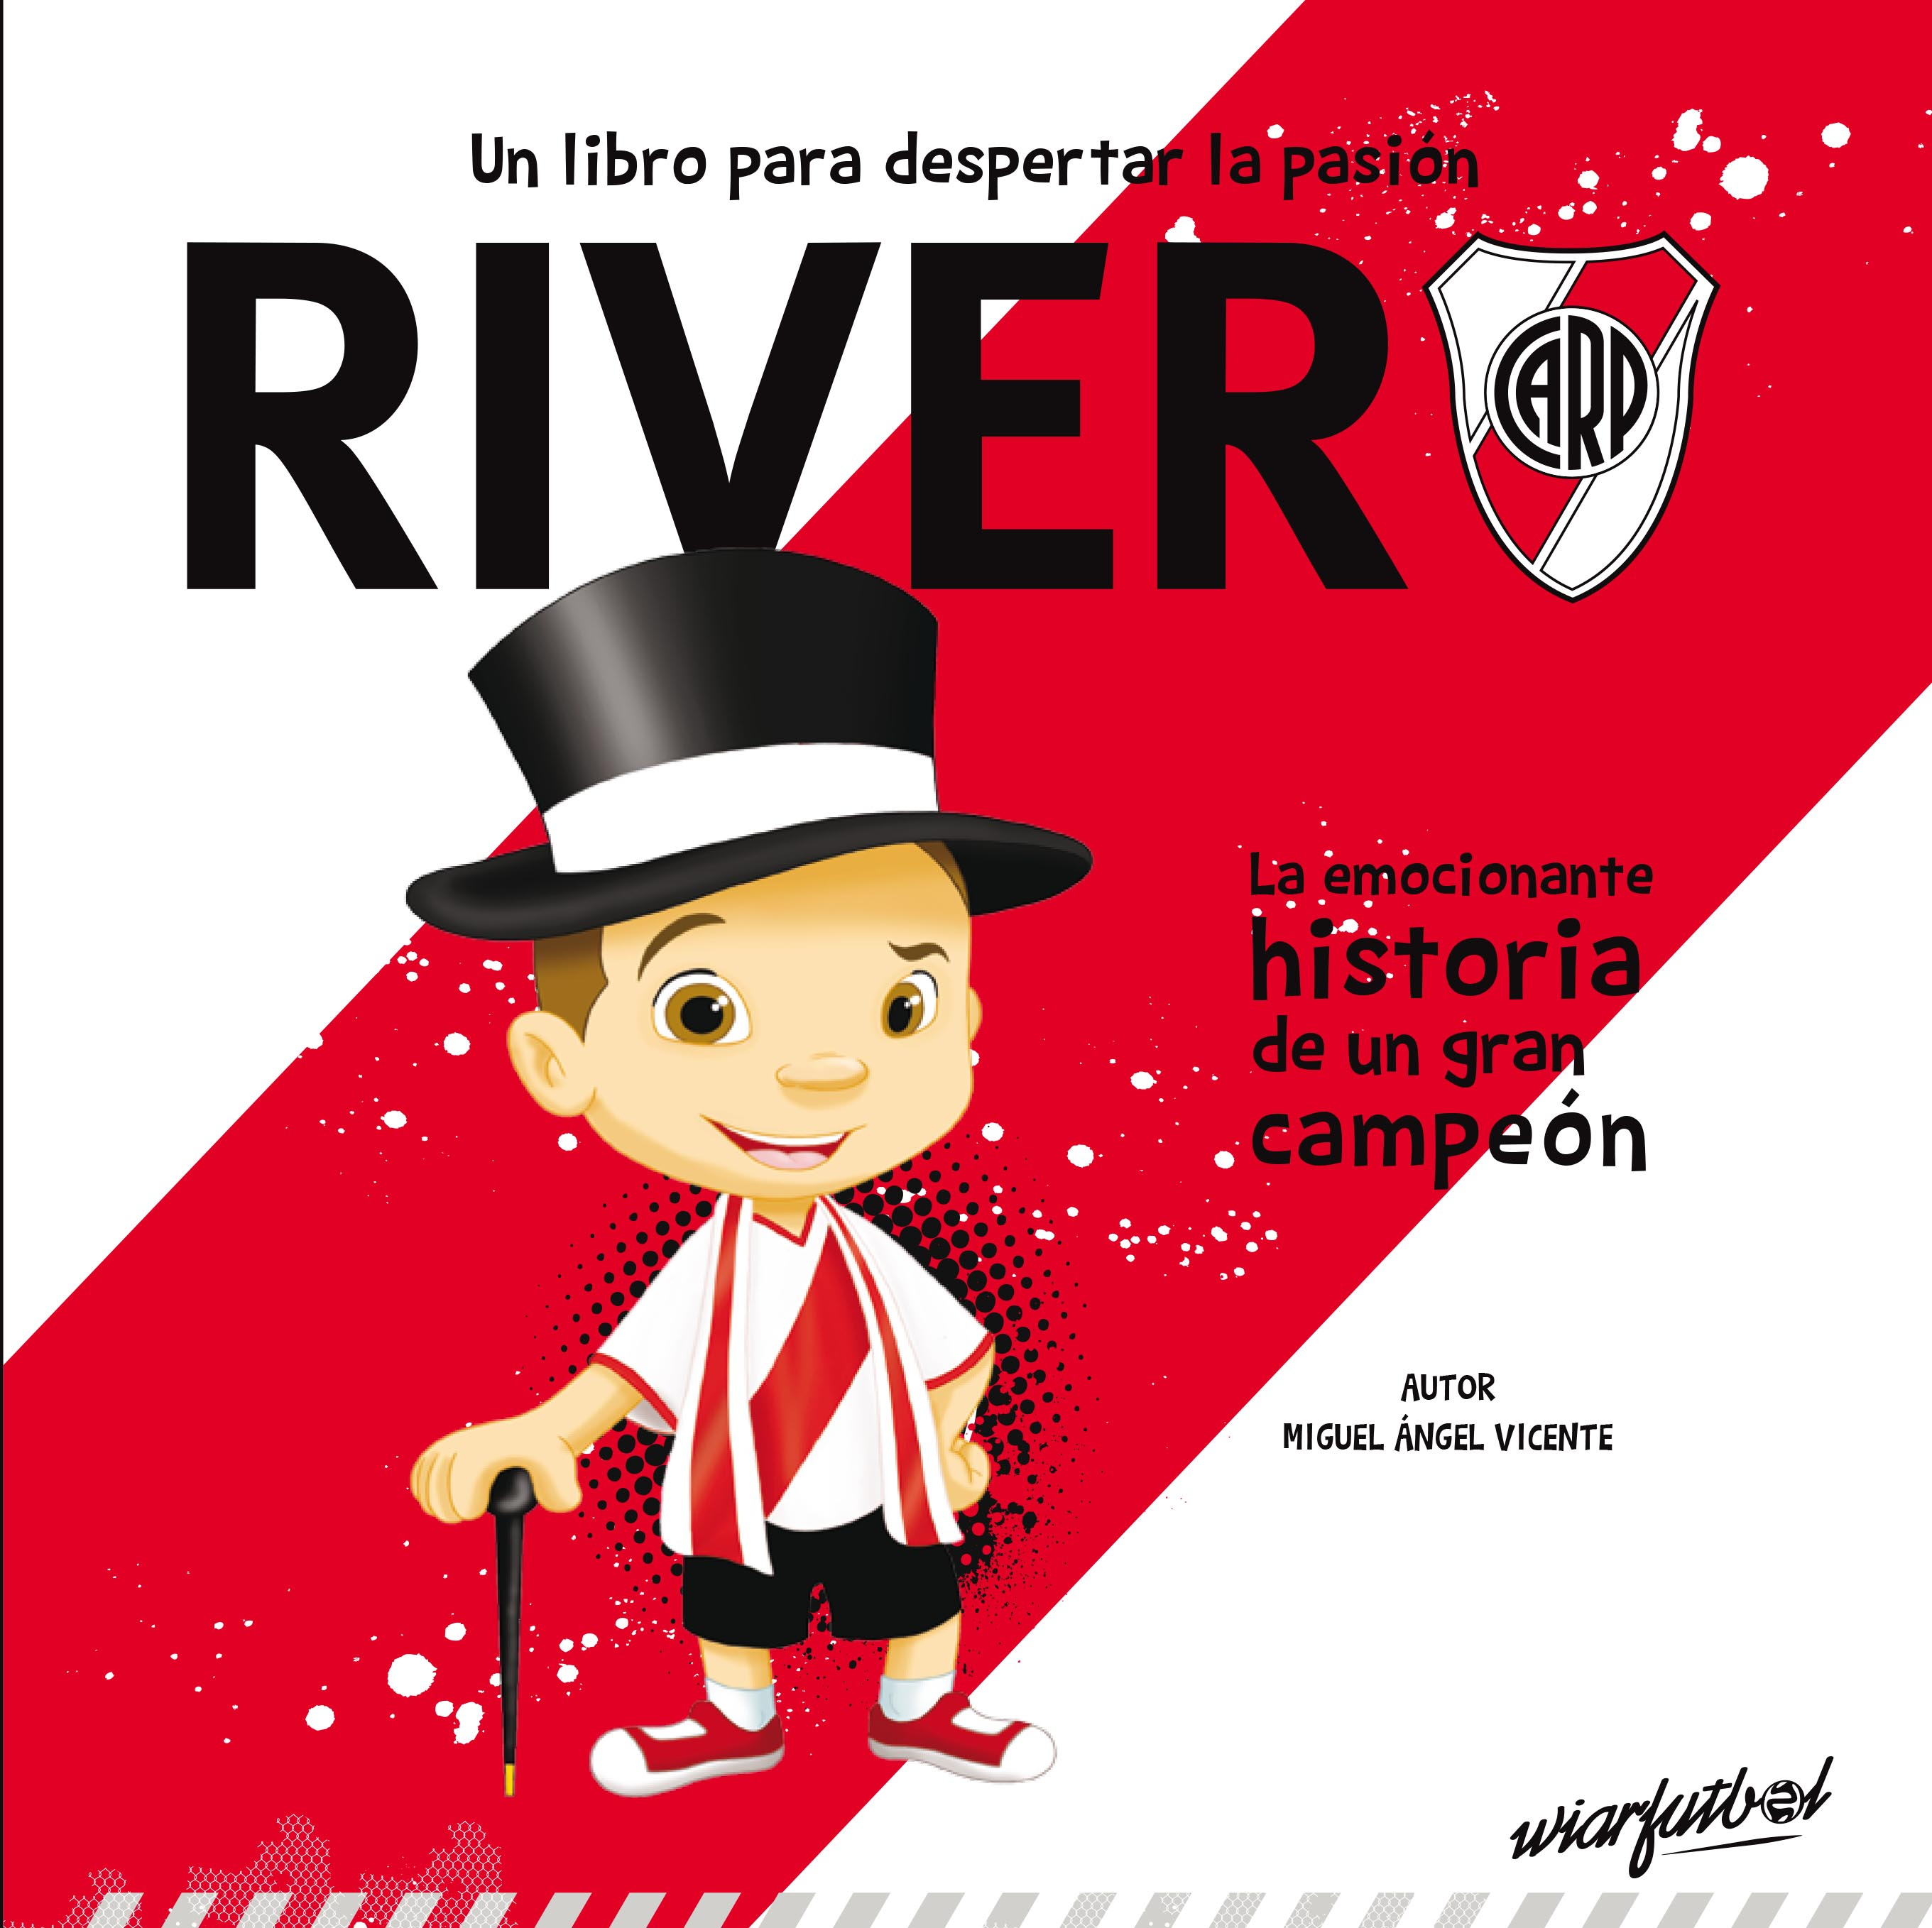 La historia de River en el Instituto